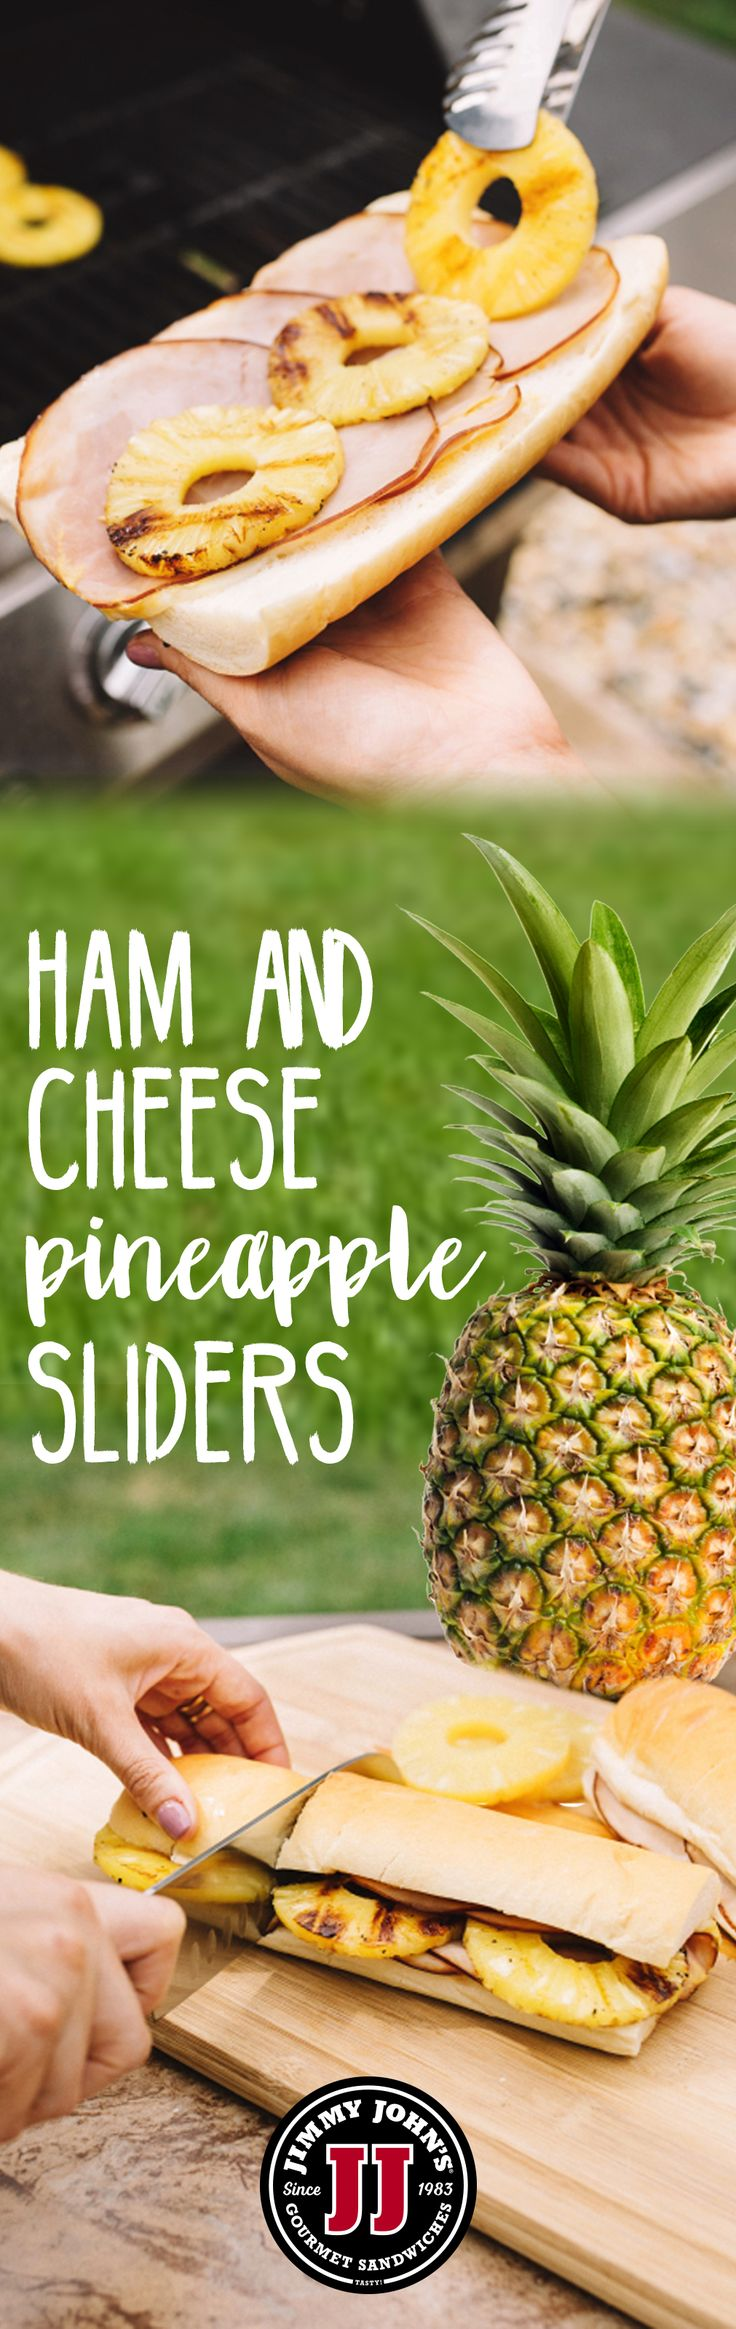 JIMMY AT HOME: HOT PEPE & PINEAPPLE SLIDERS! Check out this tasty Jimmy John's menu hack for when you've got a few extra minutes at home! These Pepe & Pineapple sliders are perfect for dinner, tailgates or a backyard luau!